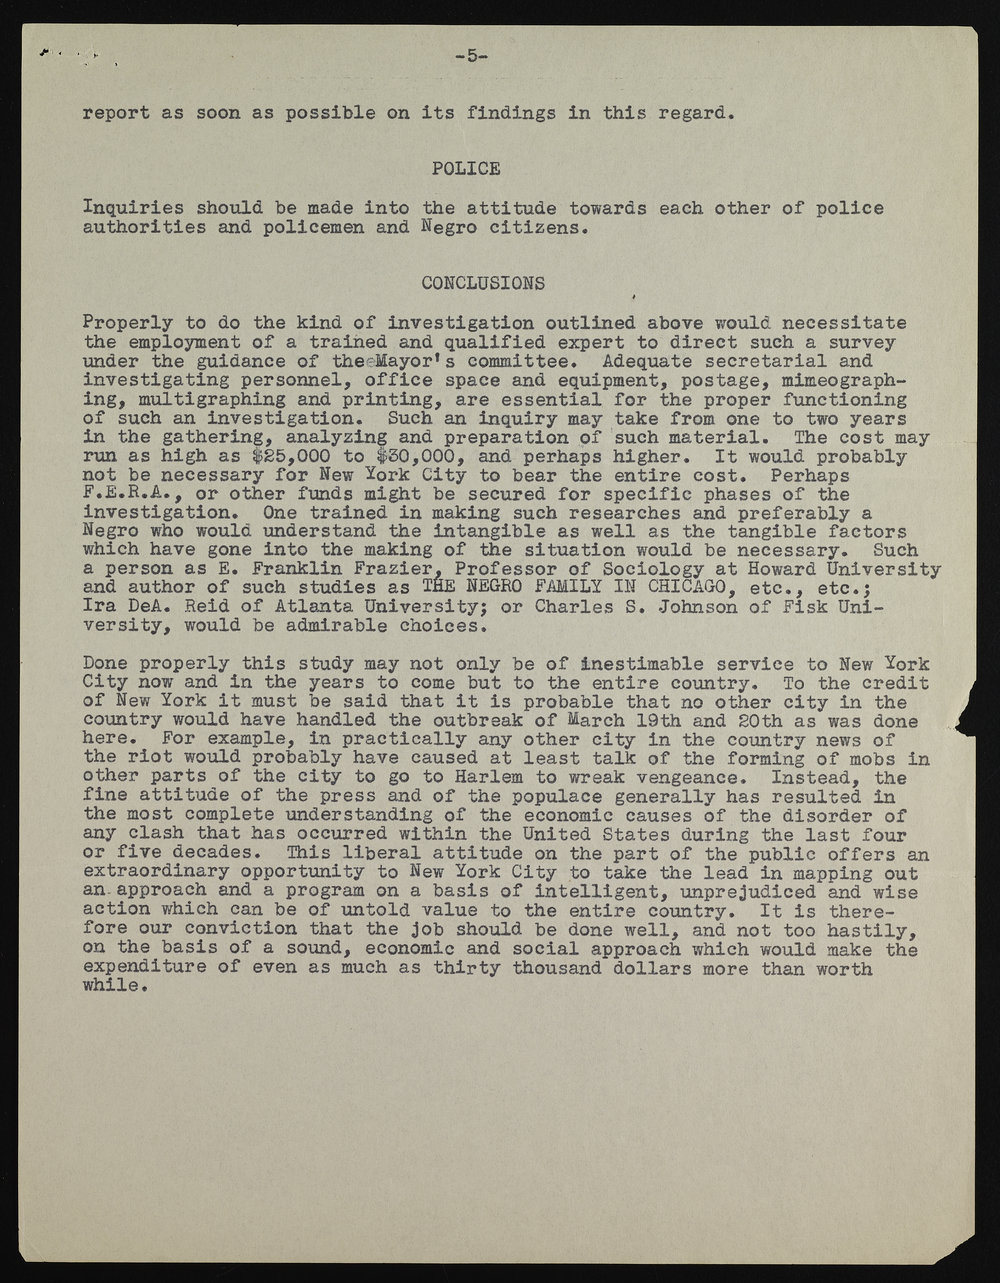 Letter from Walter White of the NAACP laying out the proposed investigation questions the committee should follow. Mayor LaGuardia Collection, NYC Municipal Archives.